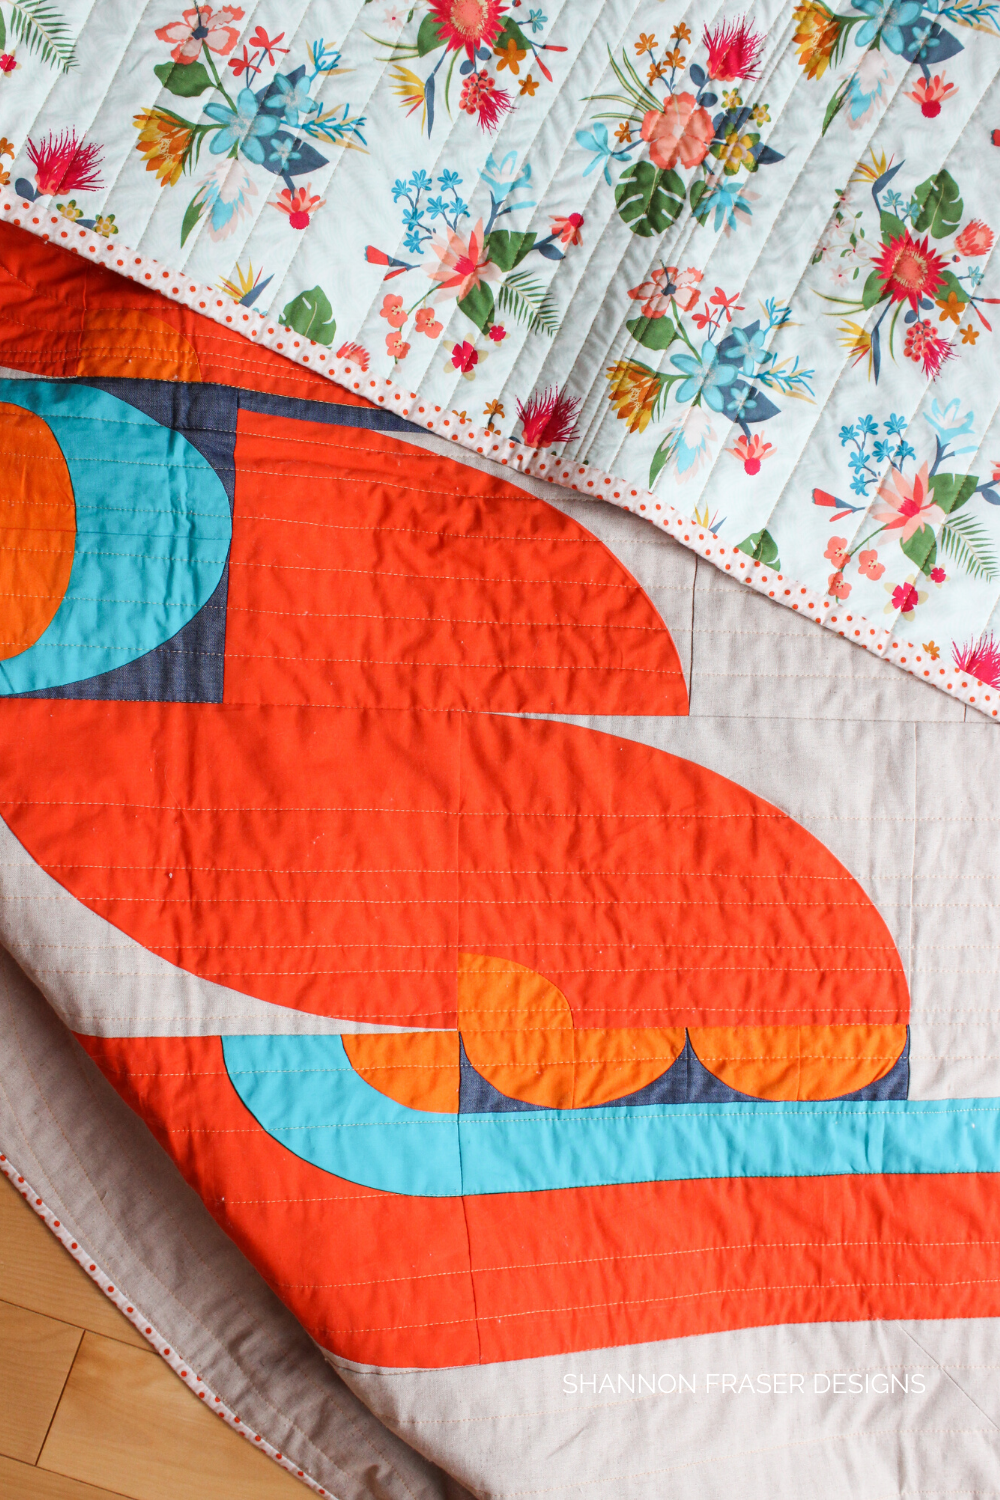 Lap Cloud Surfing quilt laid out on the floor with a peek at the floral backing showing